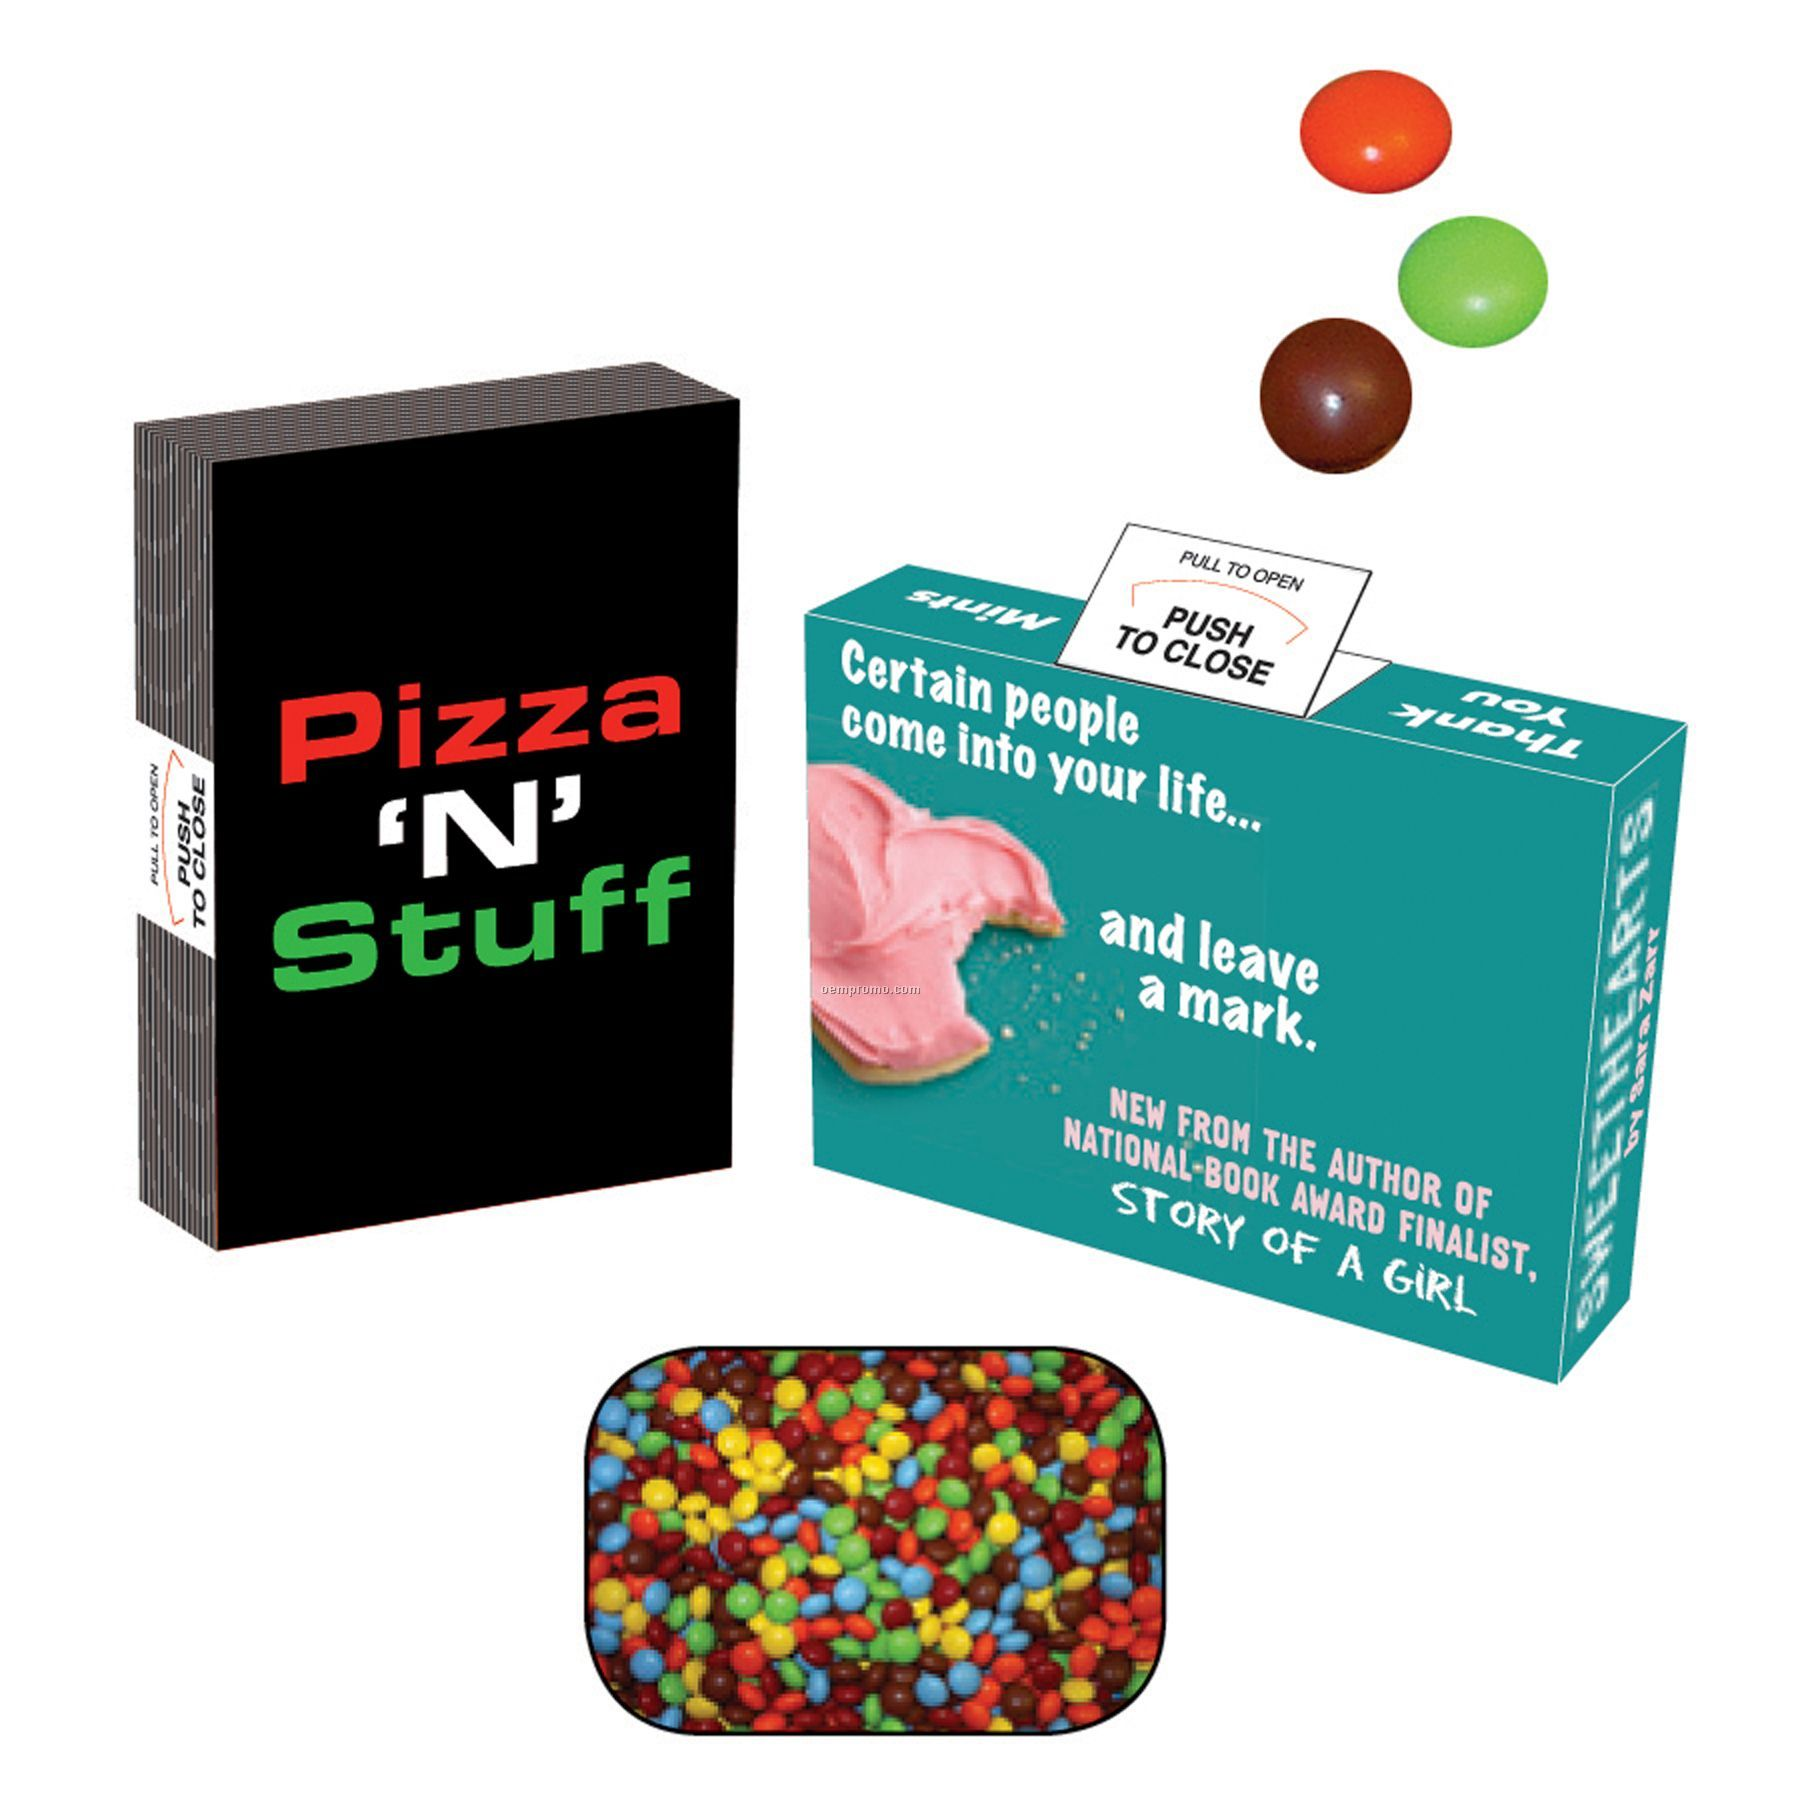 Advertising Mint, Candy & Gum Box Filled With Mini Chocolates